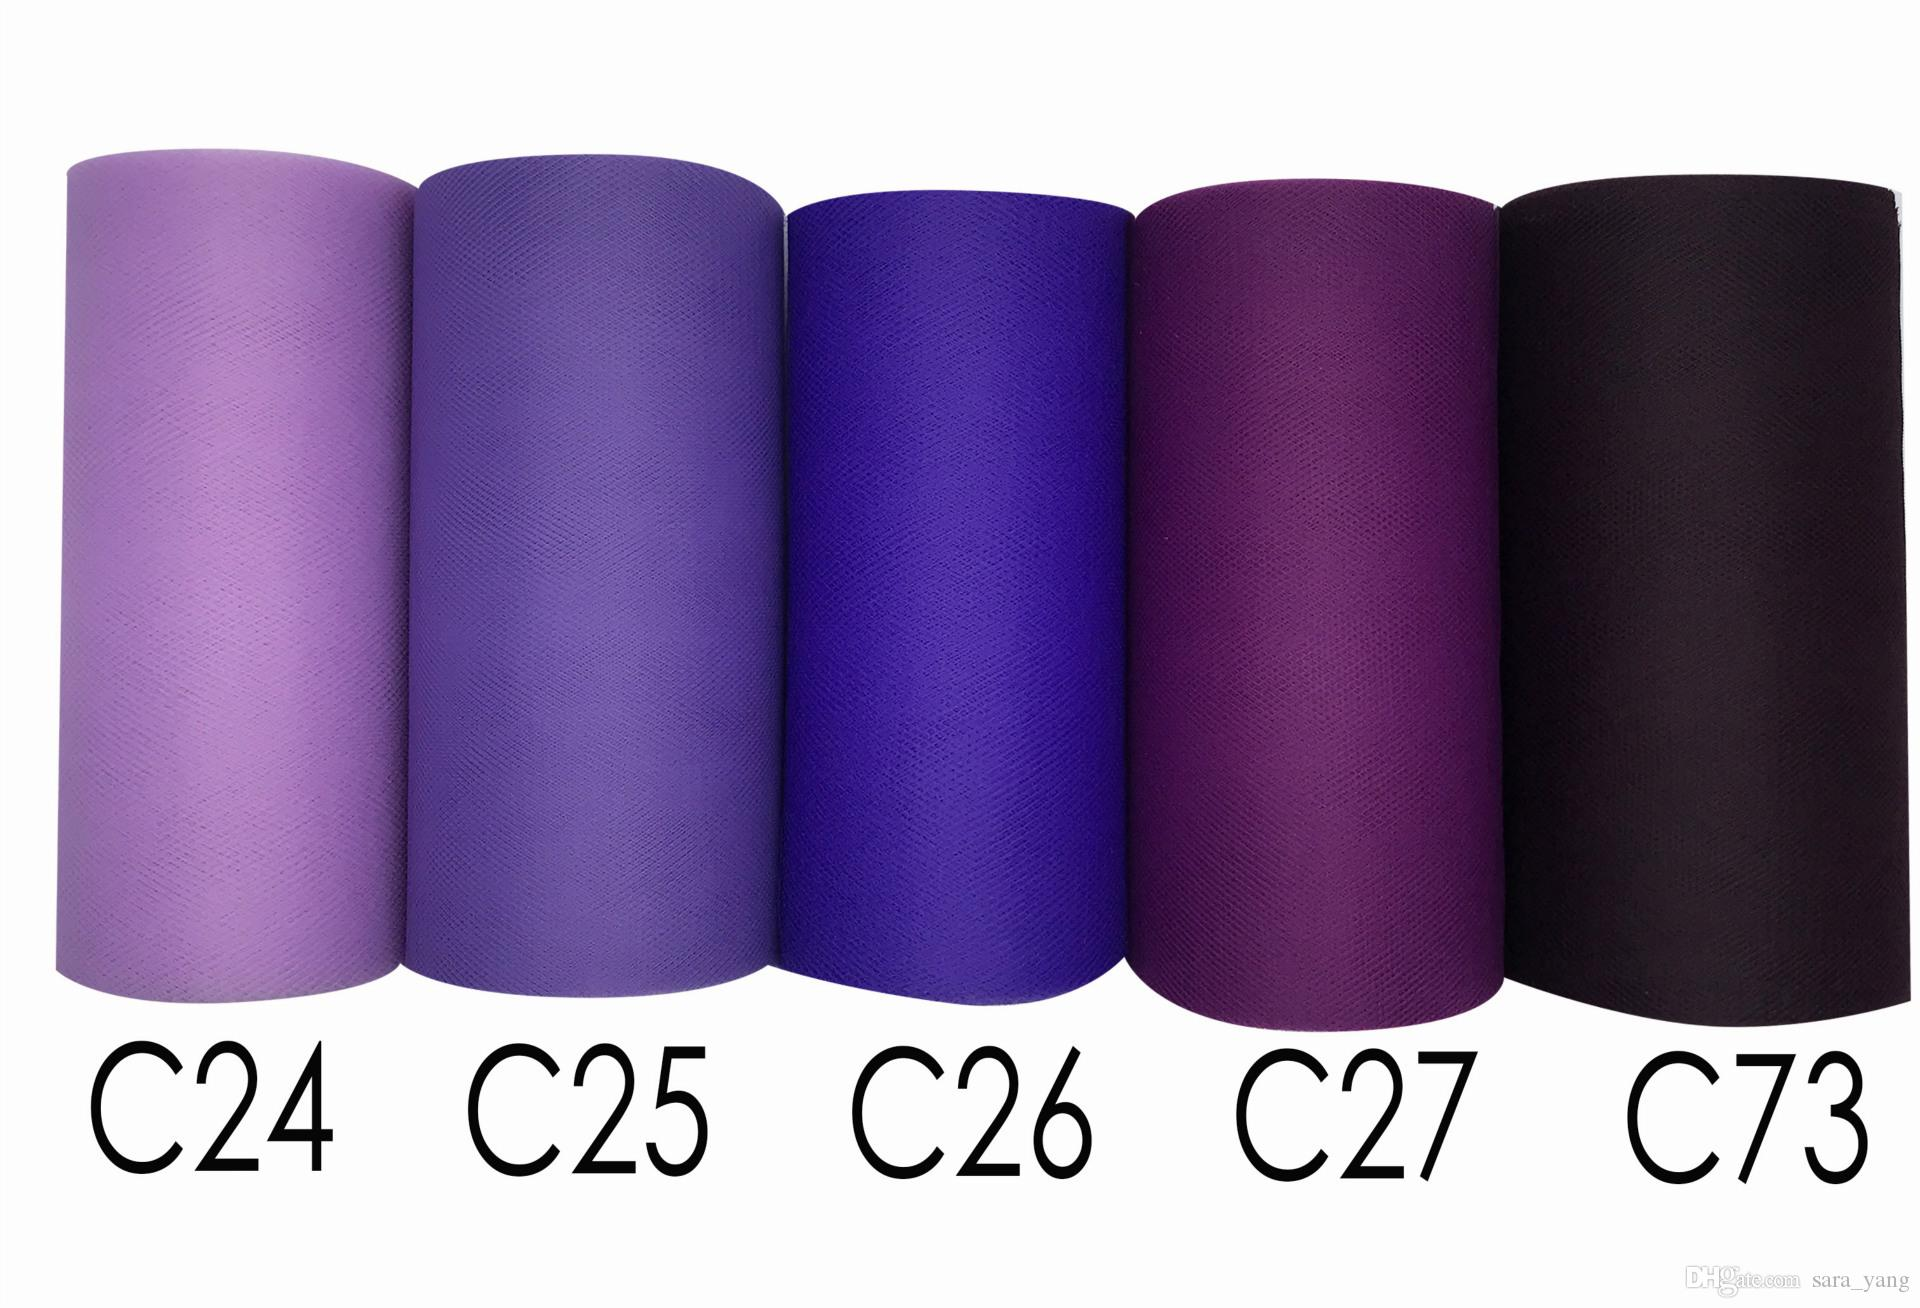 Tulle Roll 15cm 100 Yards Fabric Spool Party Birthday Gift Wrap Wedding Decor Pink C08 Tulle Roll 15cm 100 Yards Roll Fabric Spool Party Birthday Gift Wrap for Wedding Decoration Party Favors Even